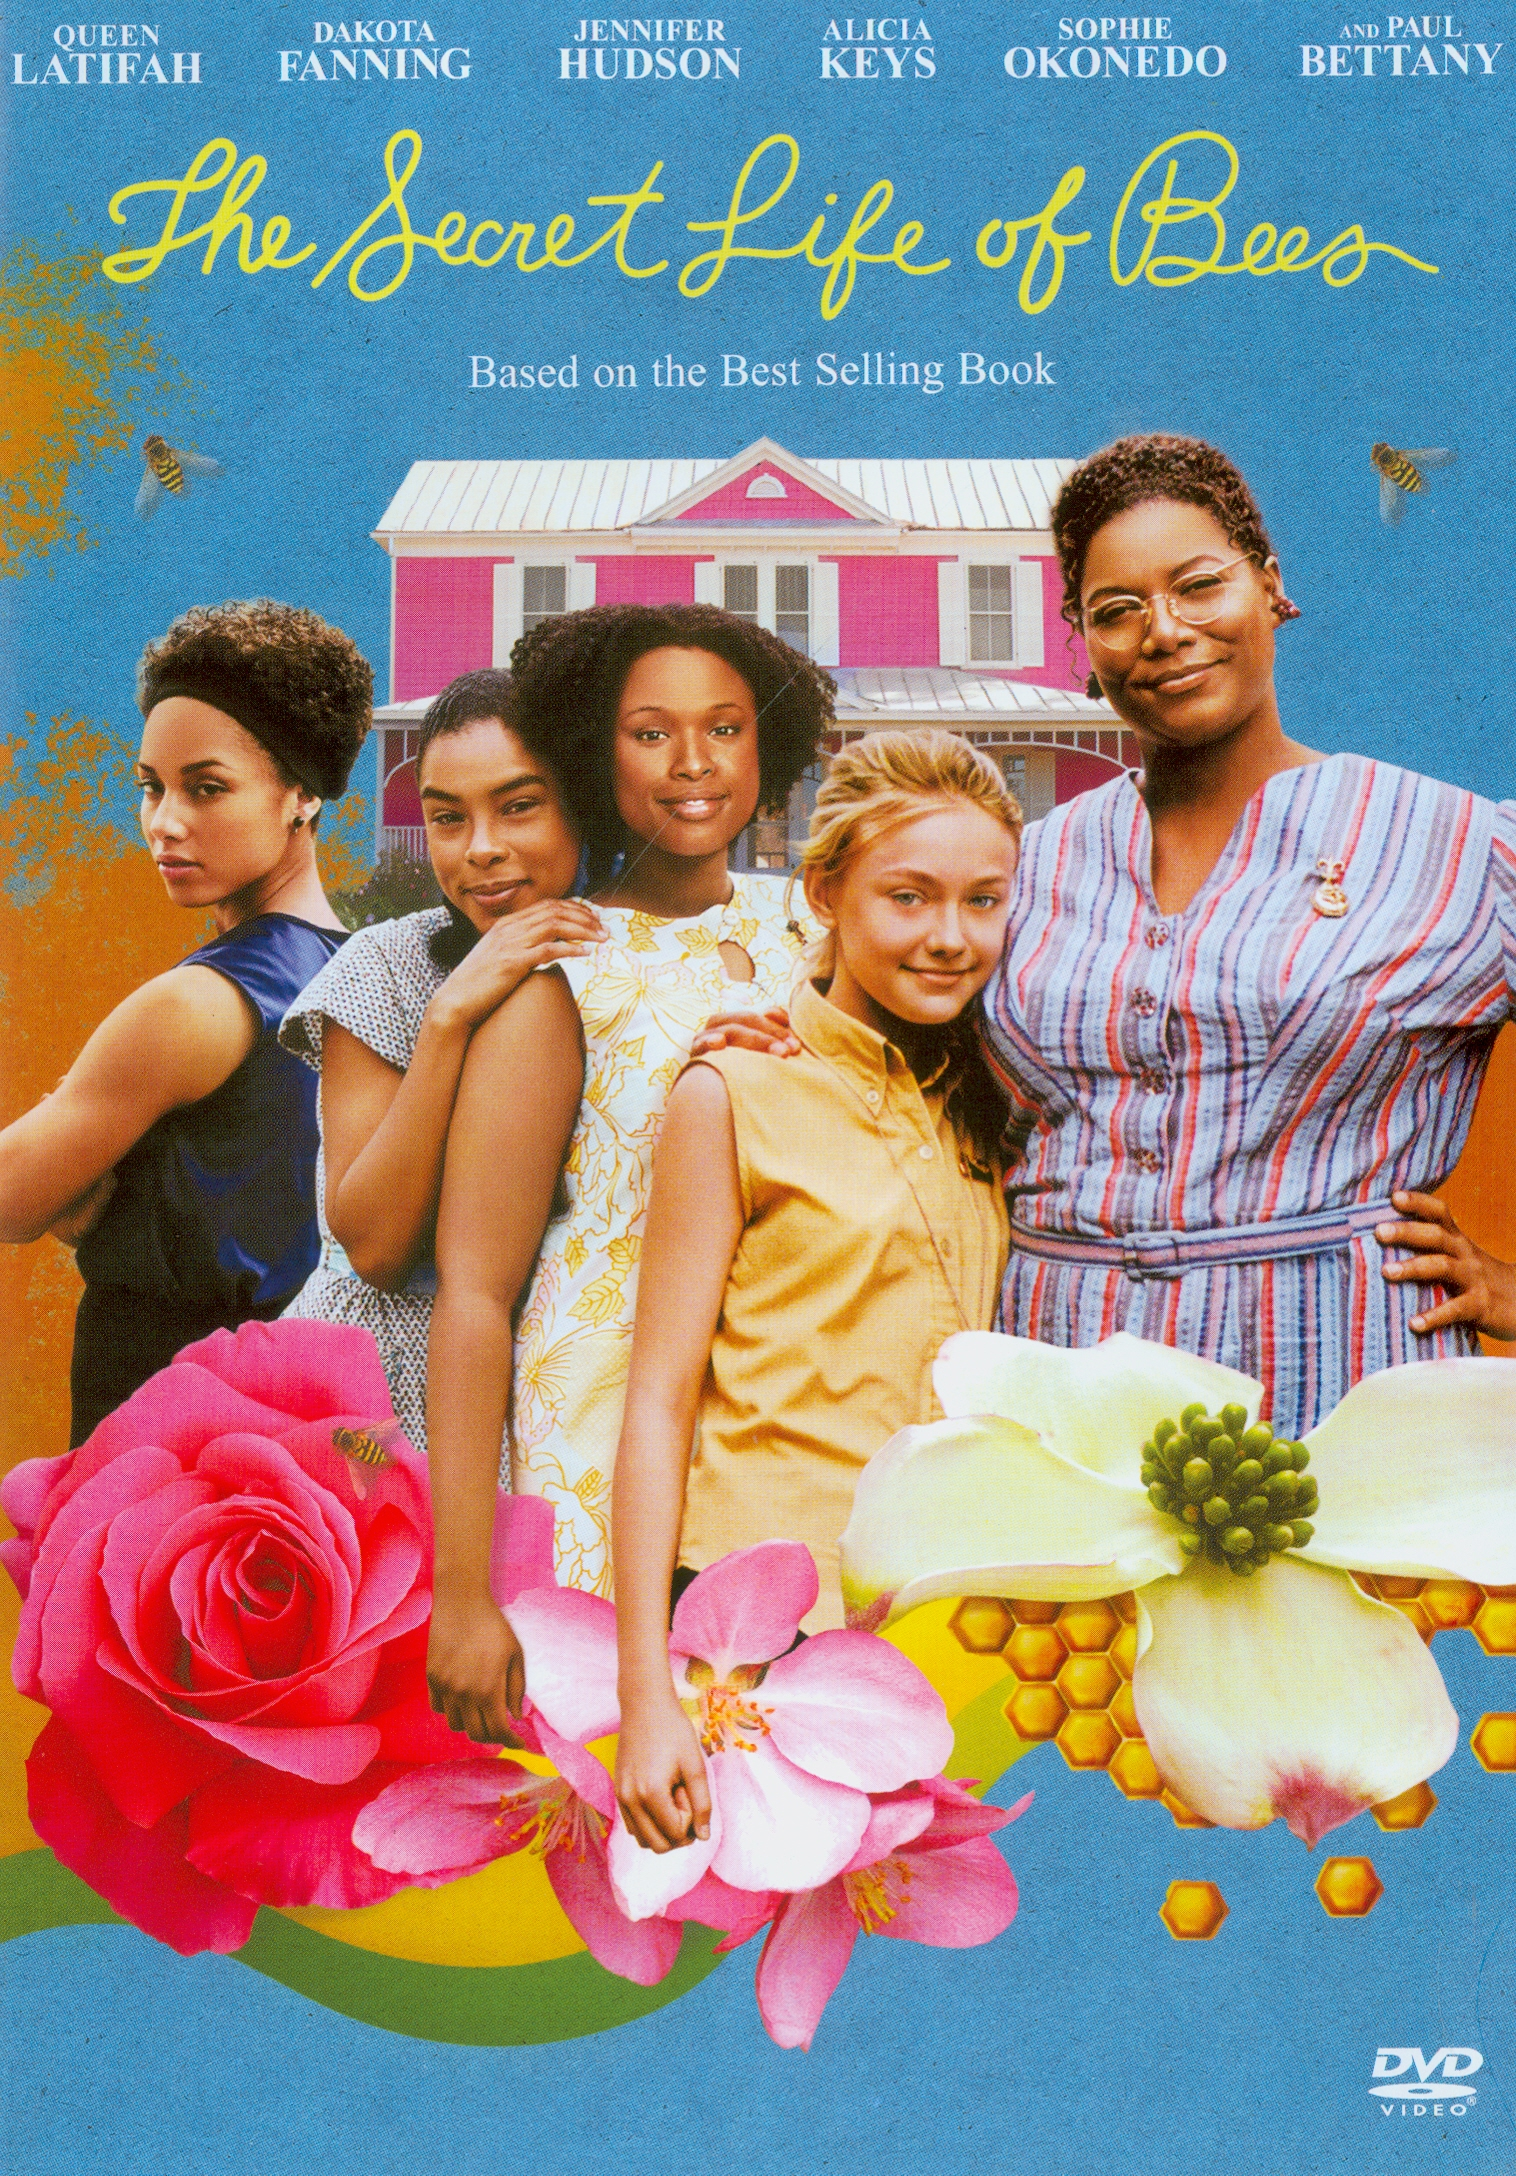 secret life of bees[videorecording] /Fox Searchlight Pictures presents an Overbrook Entertainment and Donners\' Company production ; produced by James Lassiter, Joe Pichirallo, Lauren Shuler Donner, Will Smith; screenplay by Gina Prince-Bythewood ; directed by GinaPrince-Bythewood